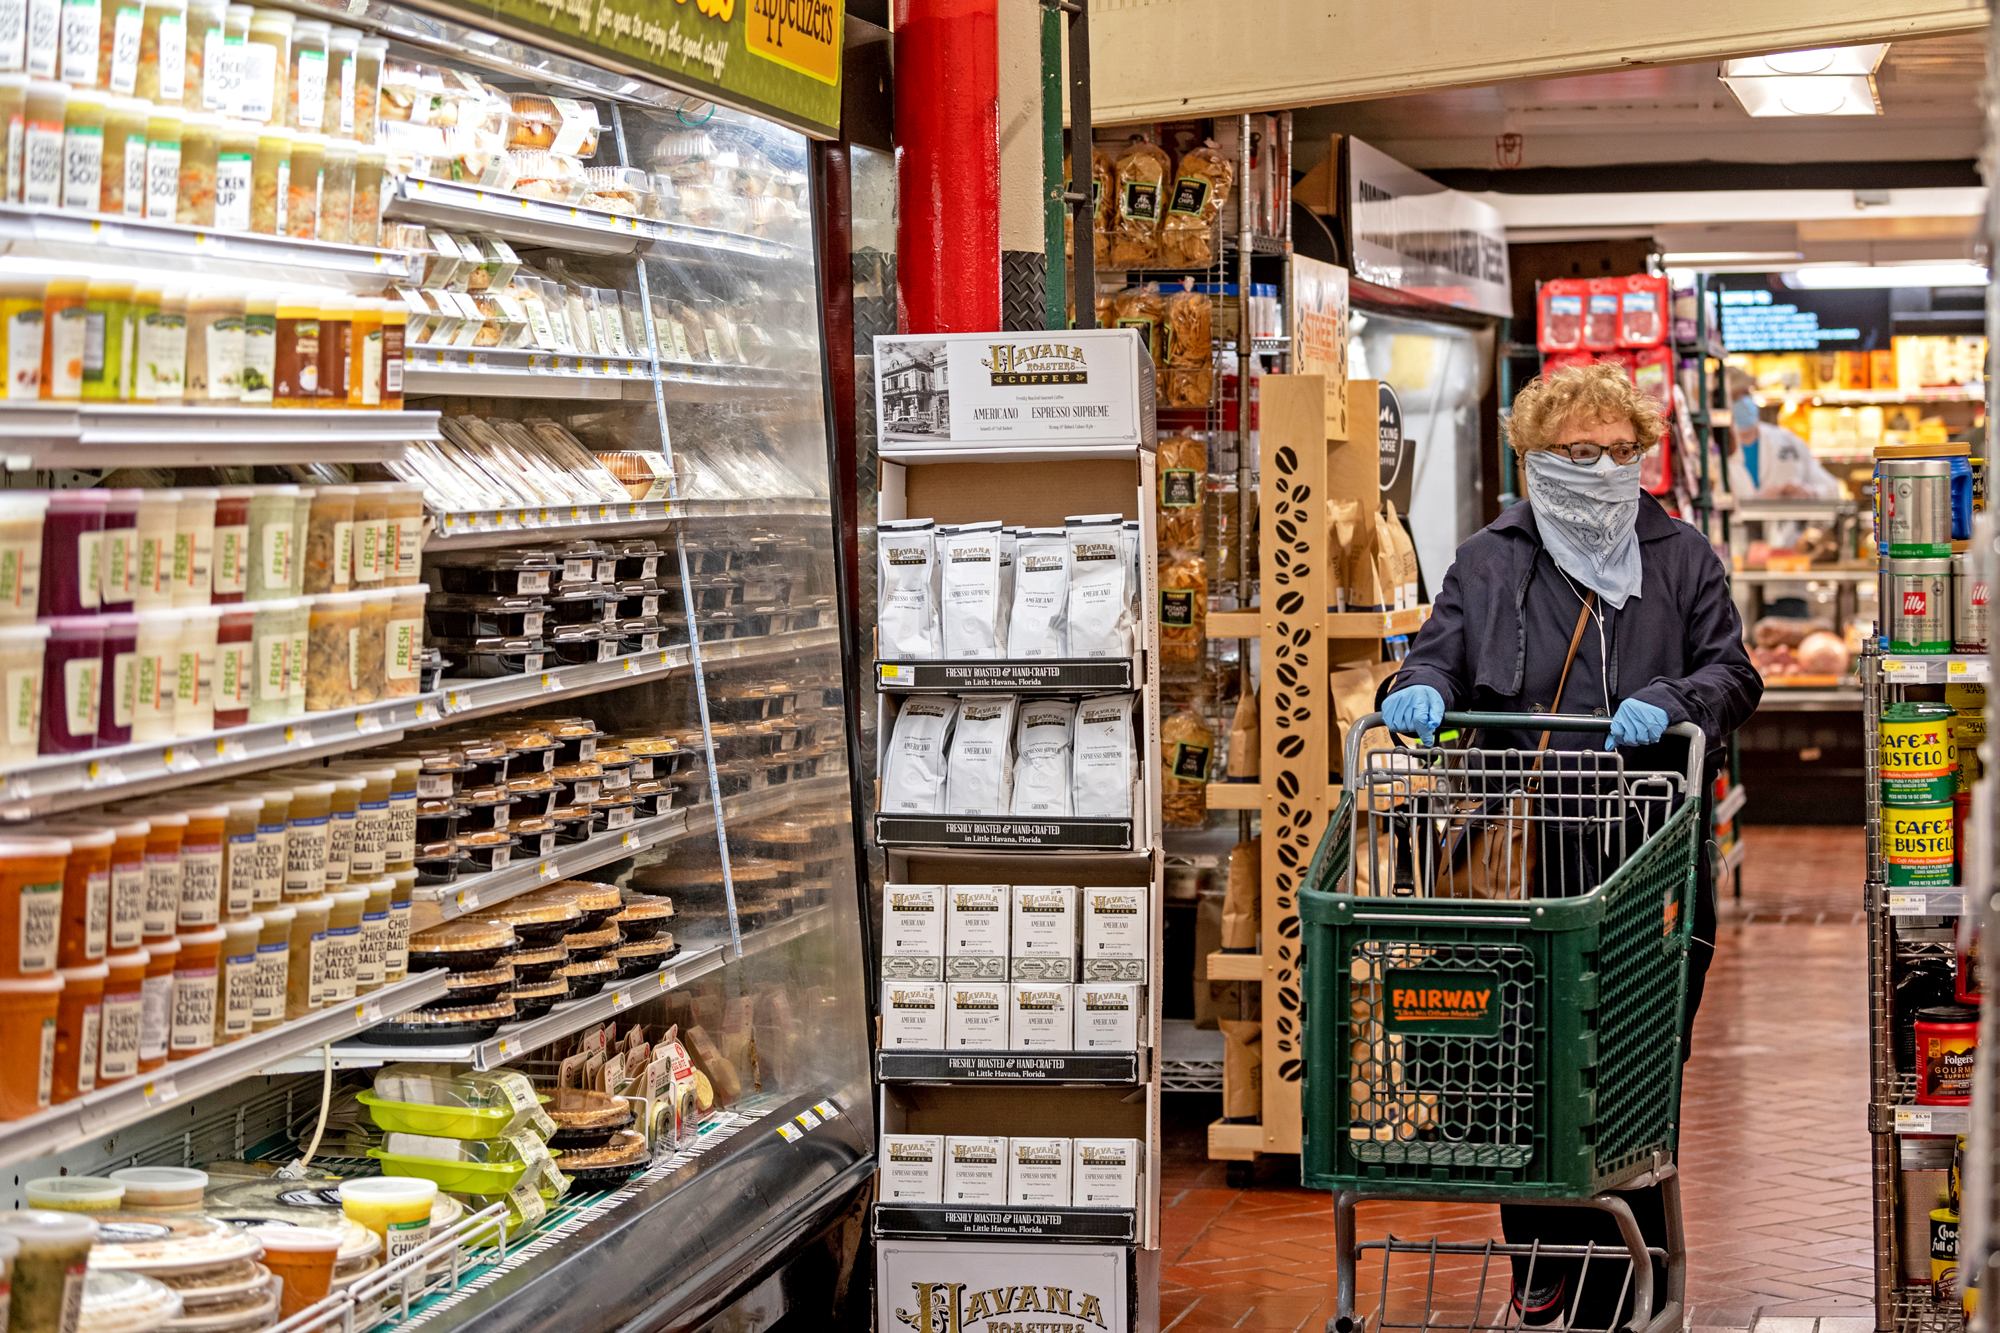 Here's What Grocery Shopping Could Look Like in the Future